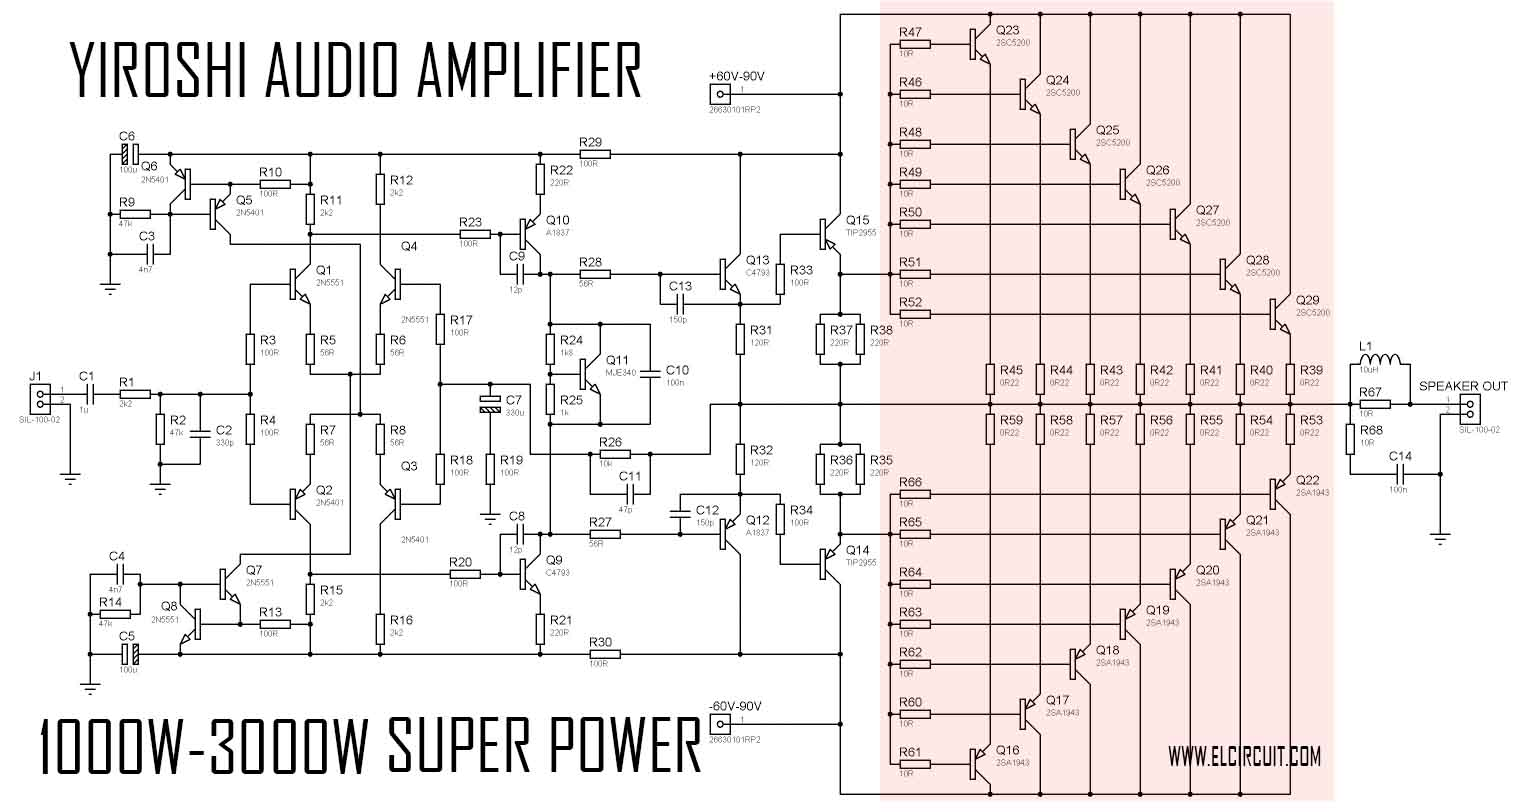 super power amplifier yiroshi audio 1000 watt electronic circuit 1000 watt audio amplifier circuit diagram pdf 1000 watt audio amplifier circuit diagrams [ 1520 x 812 Pixel ]